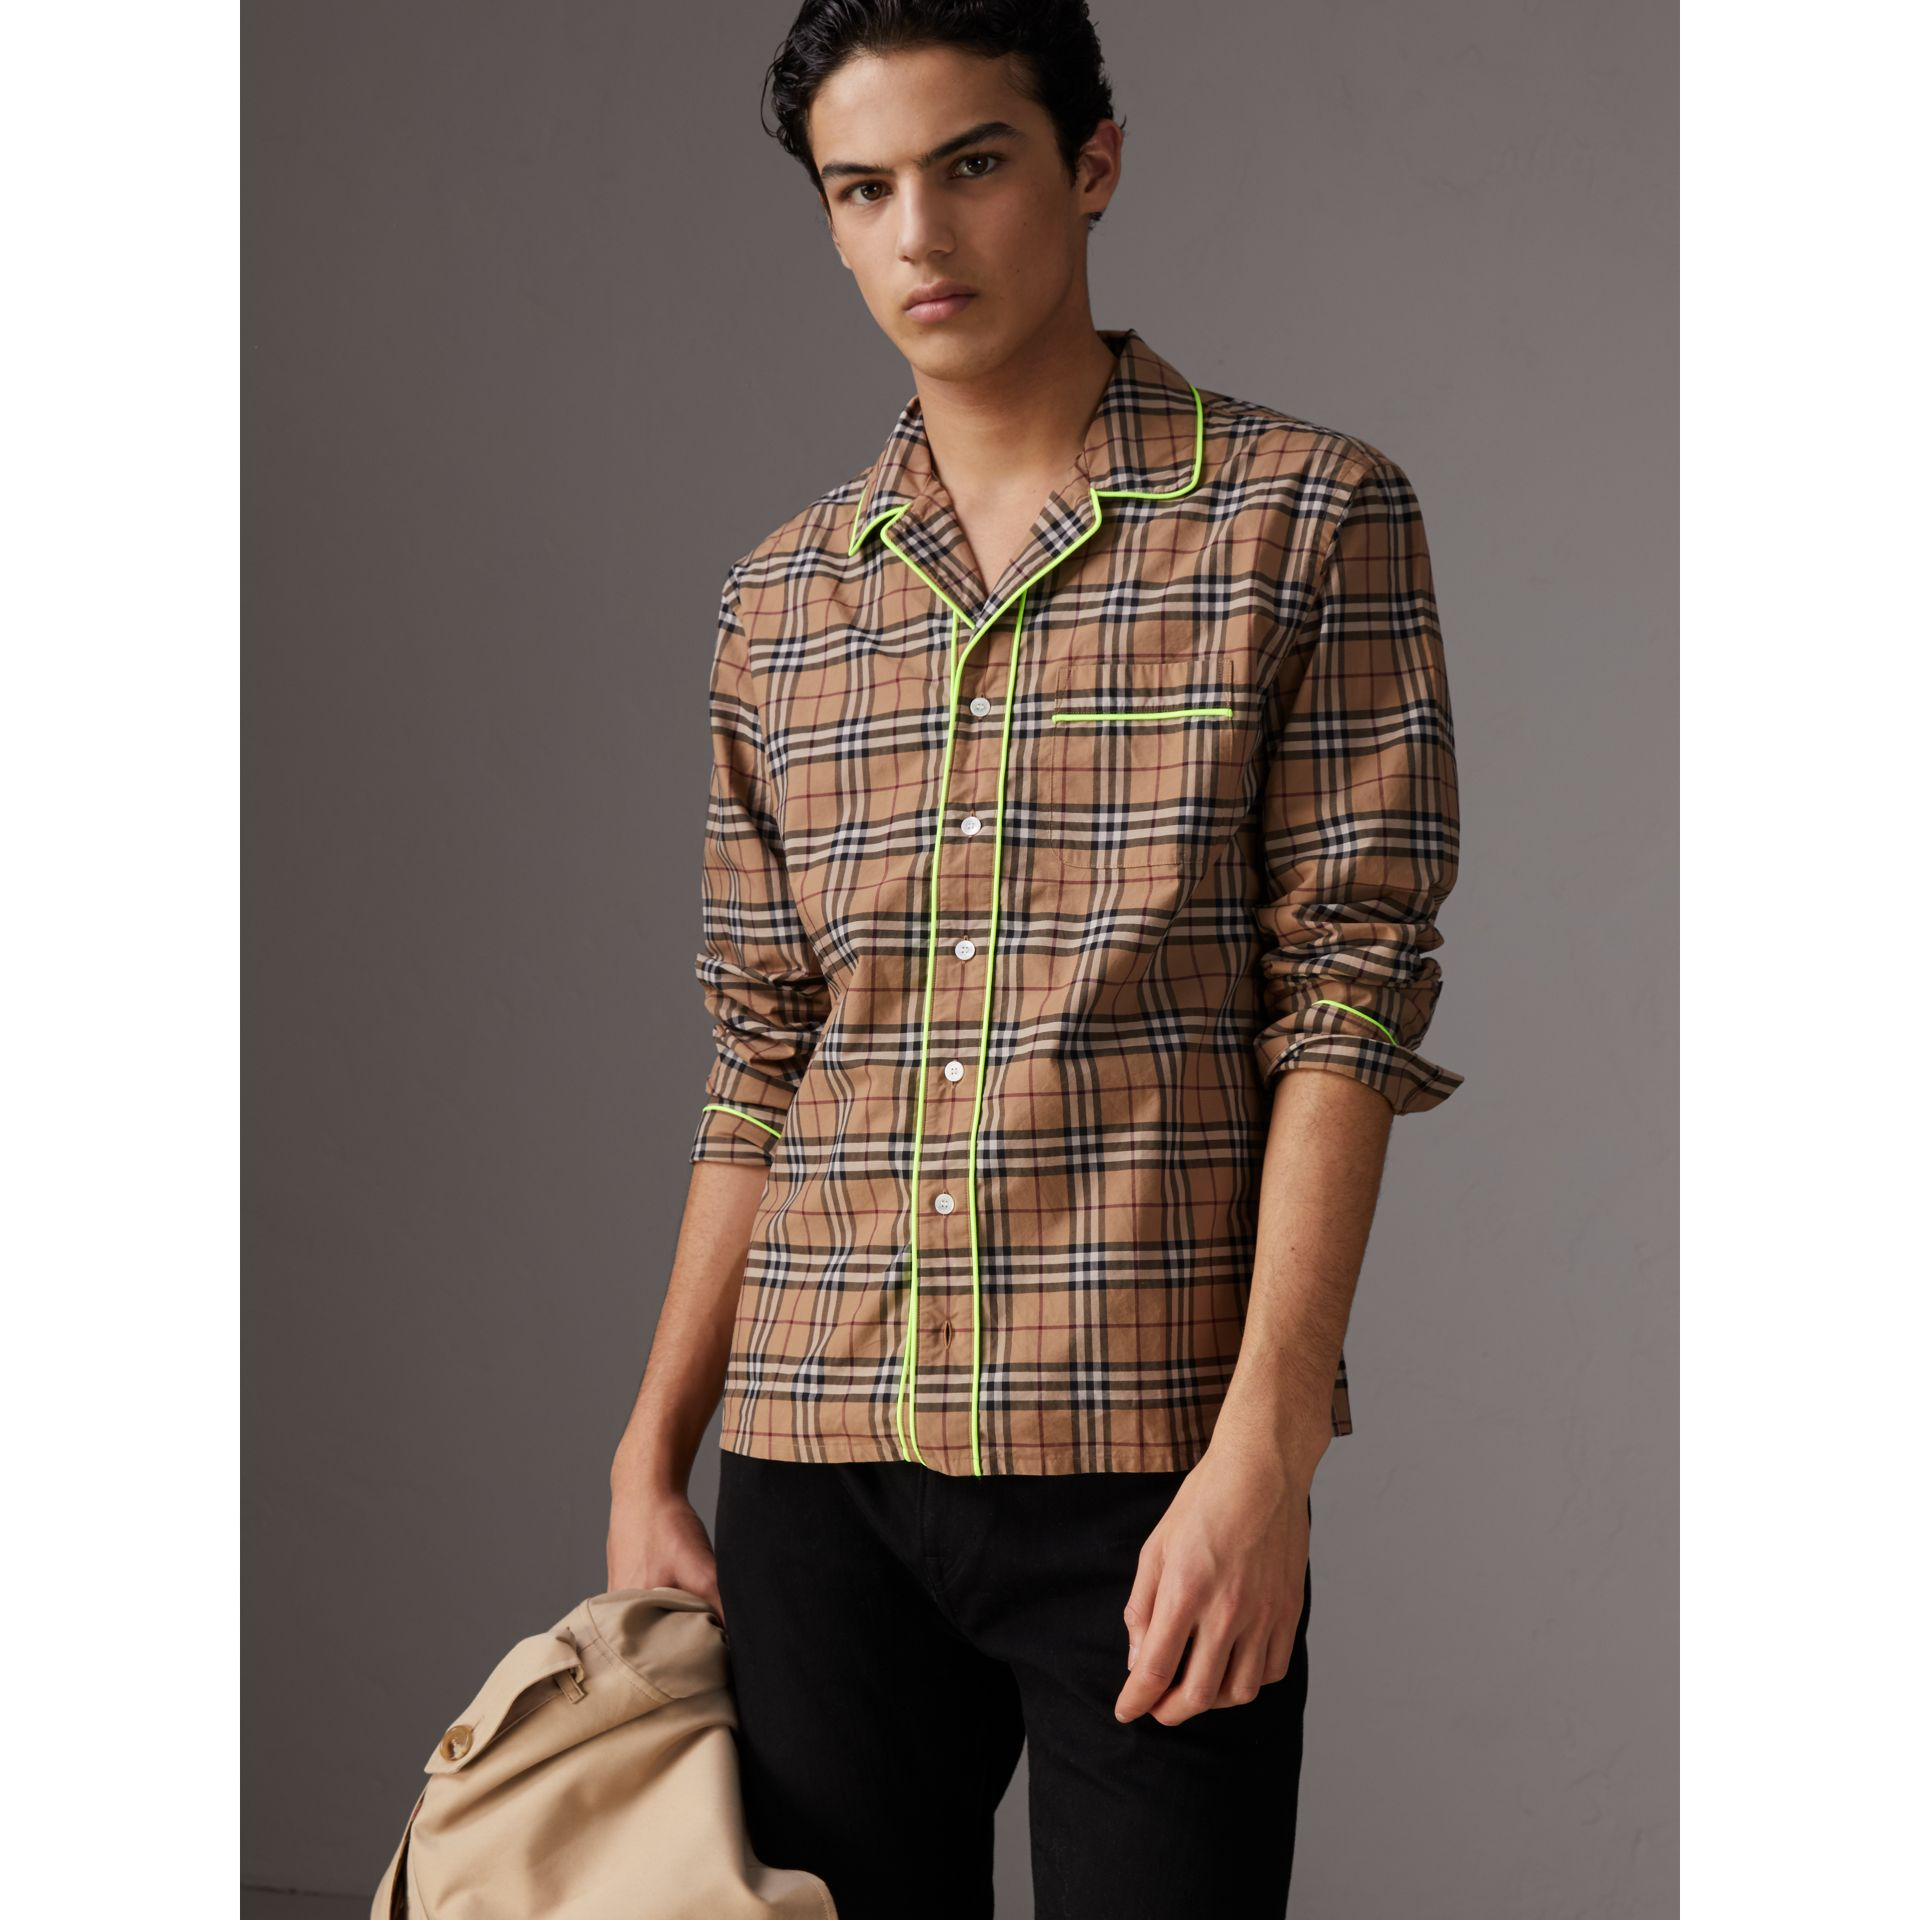 Contrast Piping Check Cotton Pyjama-style Shirt in Camel - Men | Burberry - gallery image 4